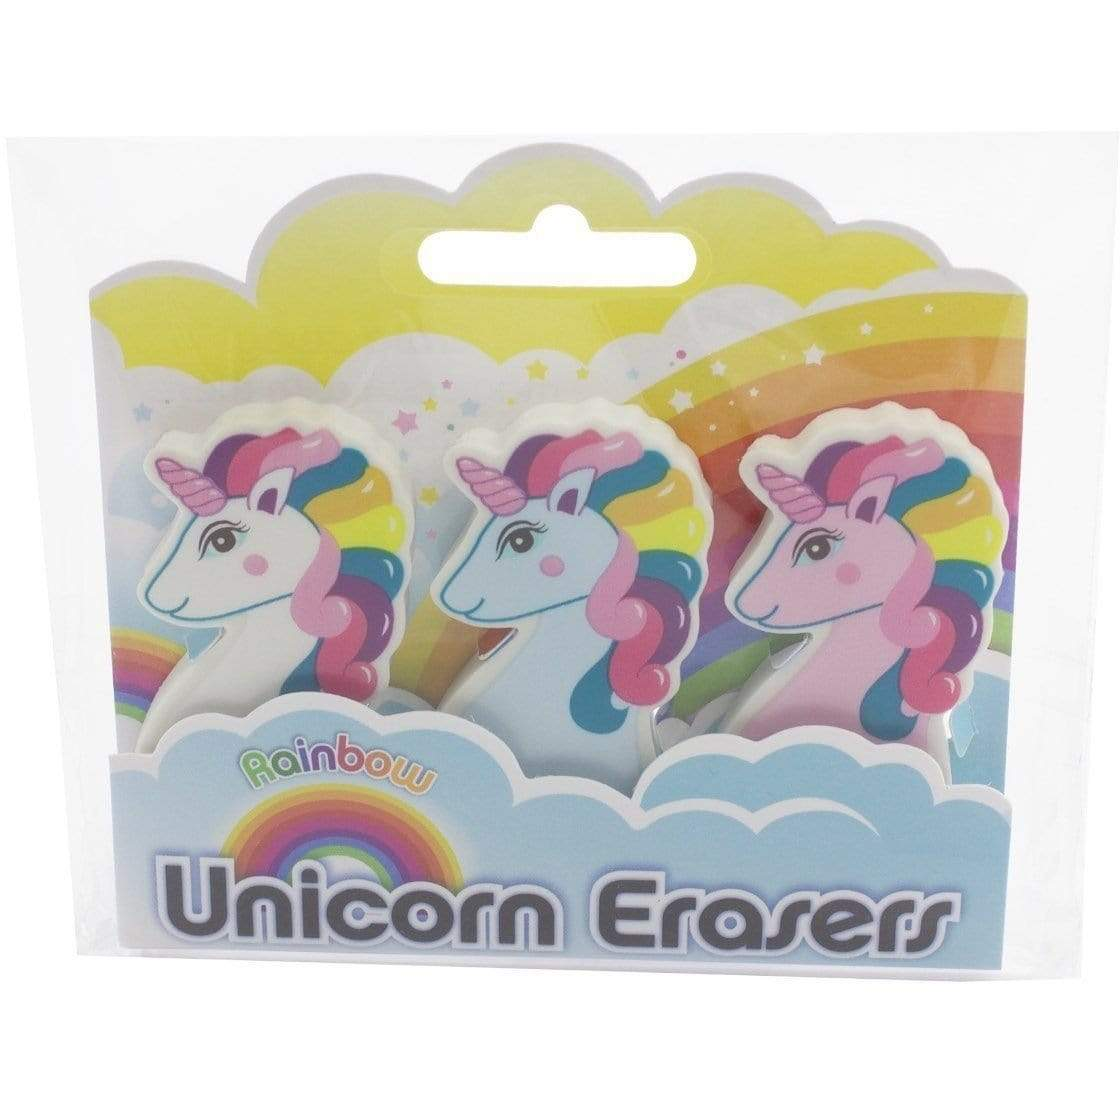 Rainbow Unicorn Eraser Set